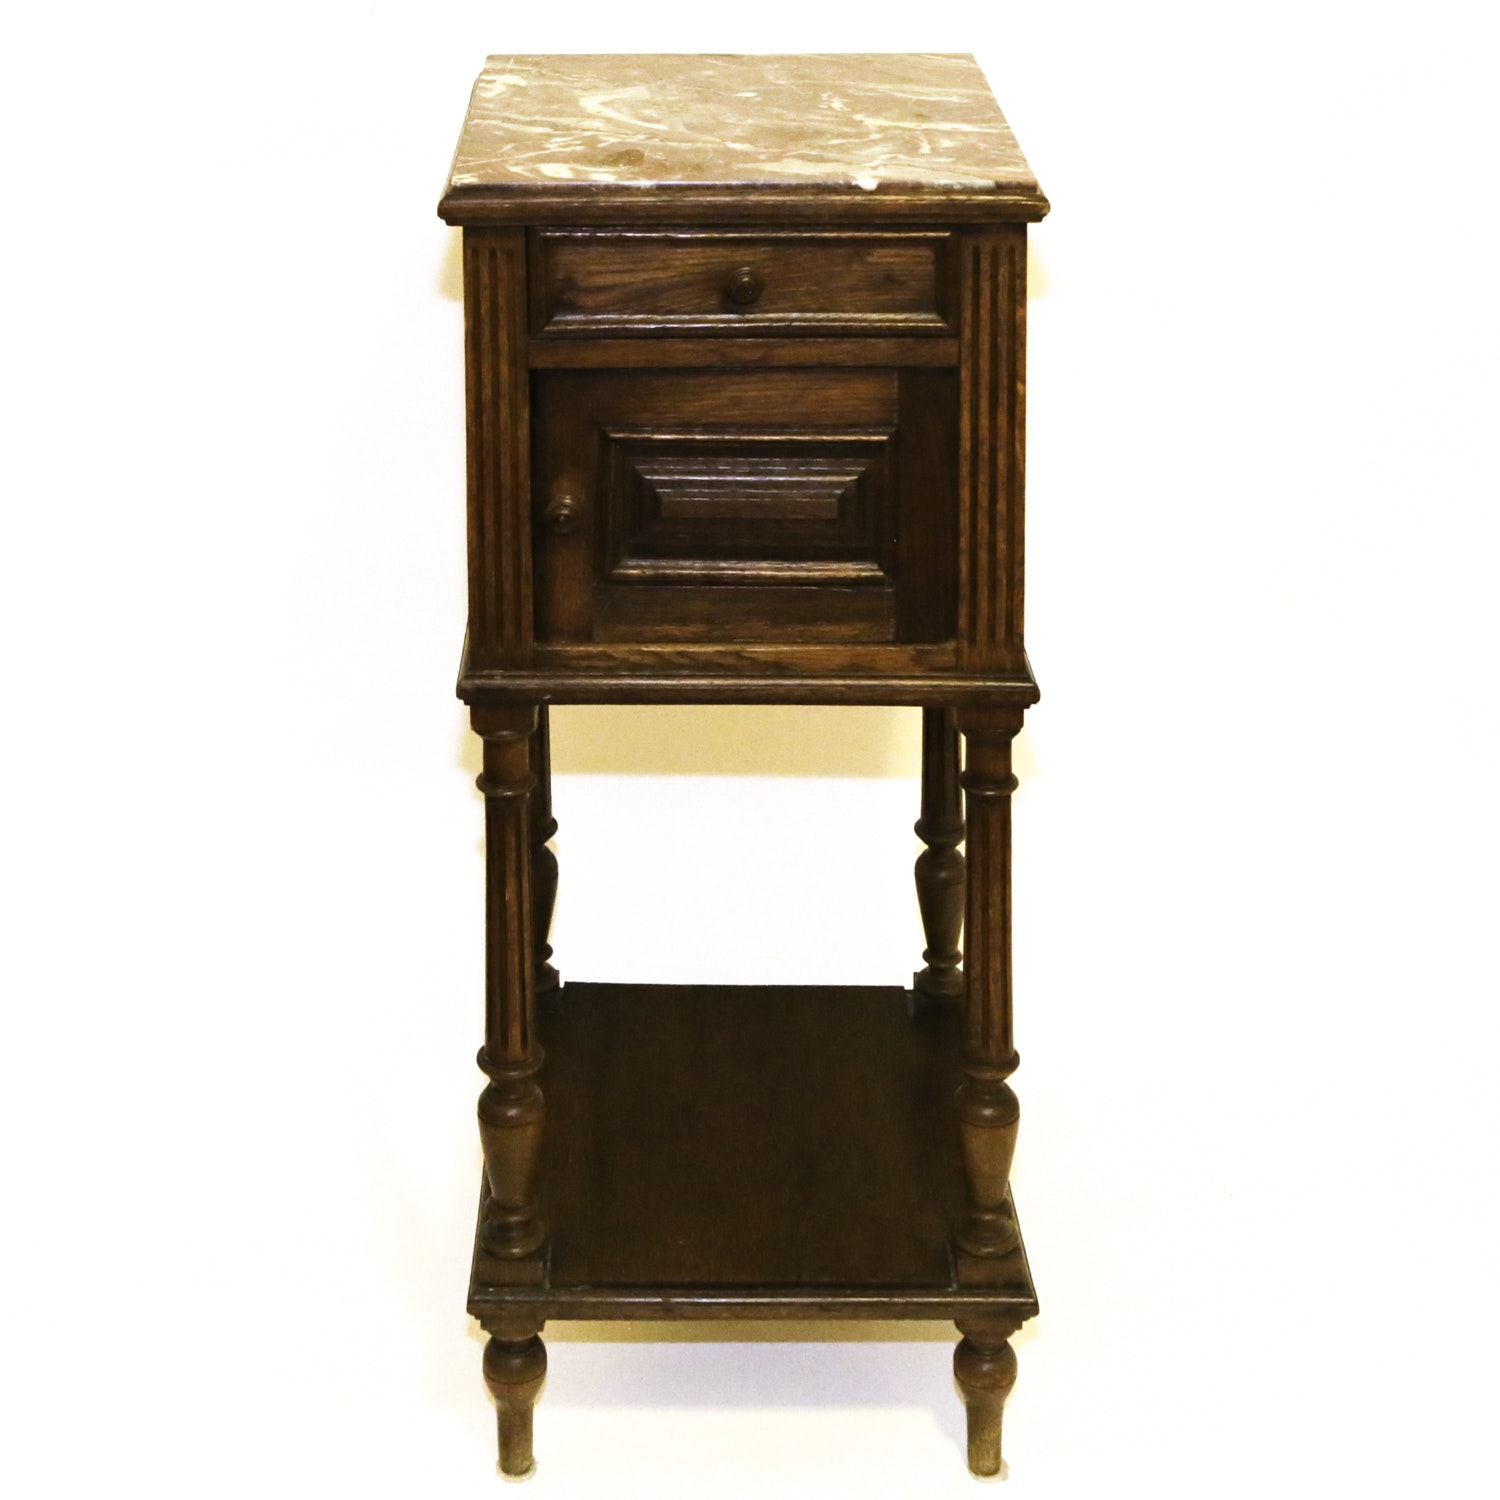 Antique Continental Marble Top Oak Bedside Table